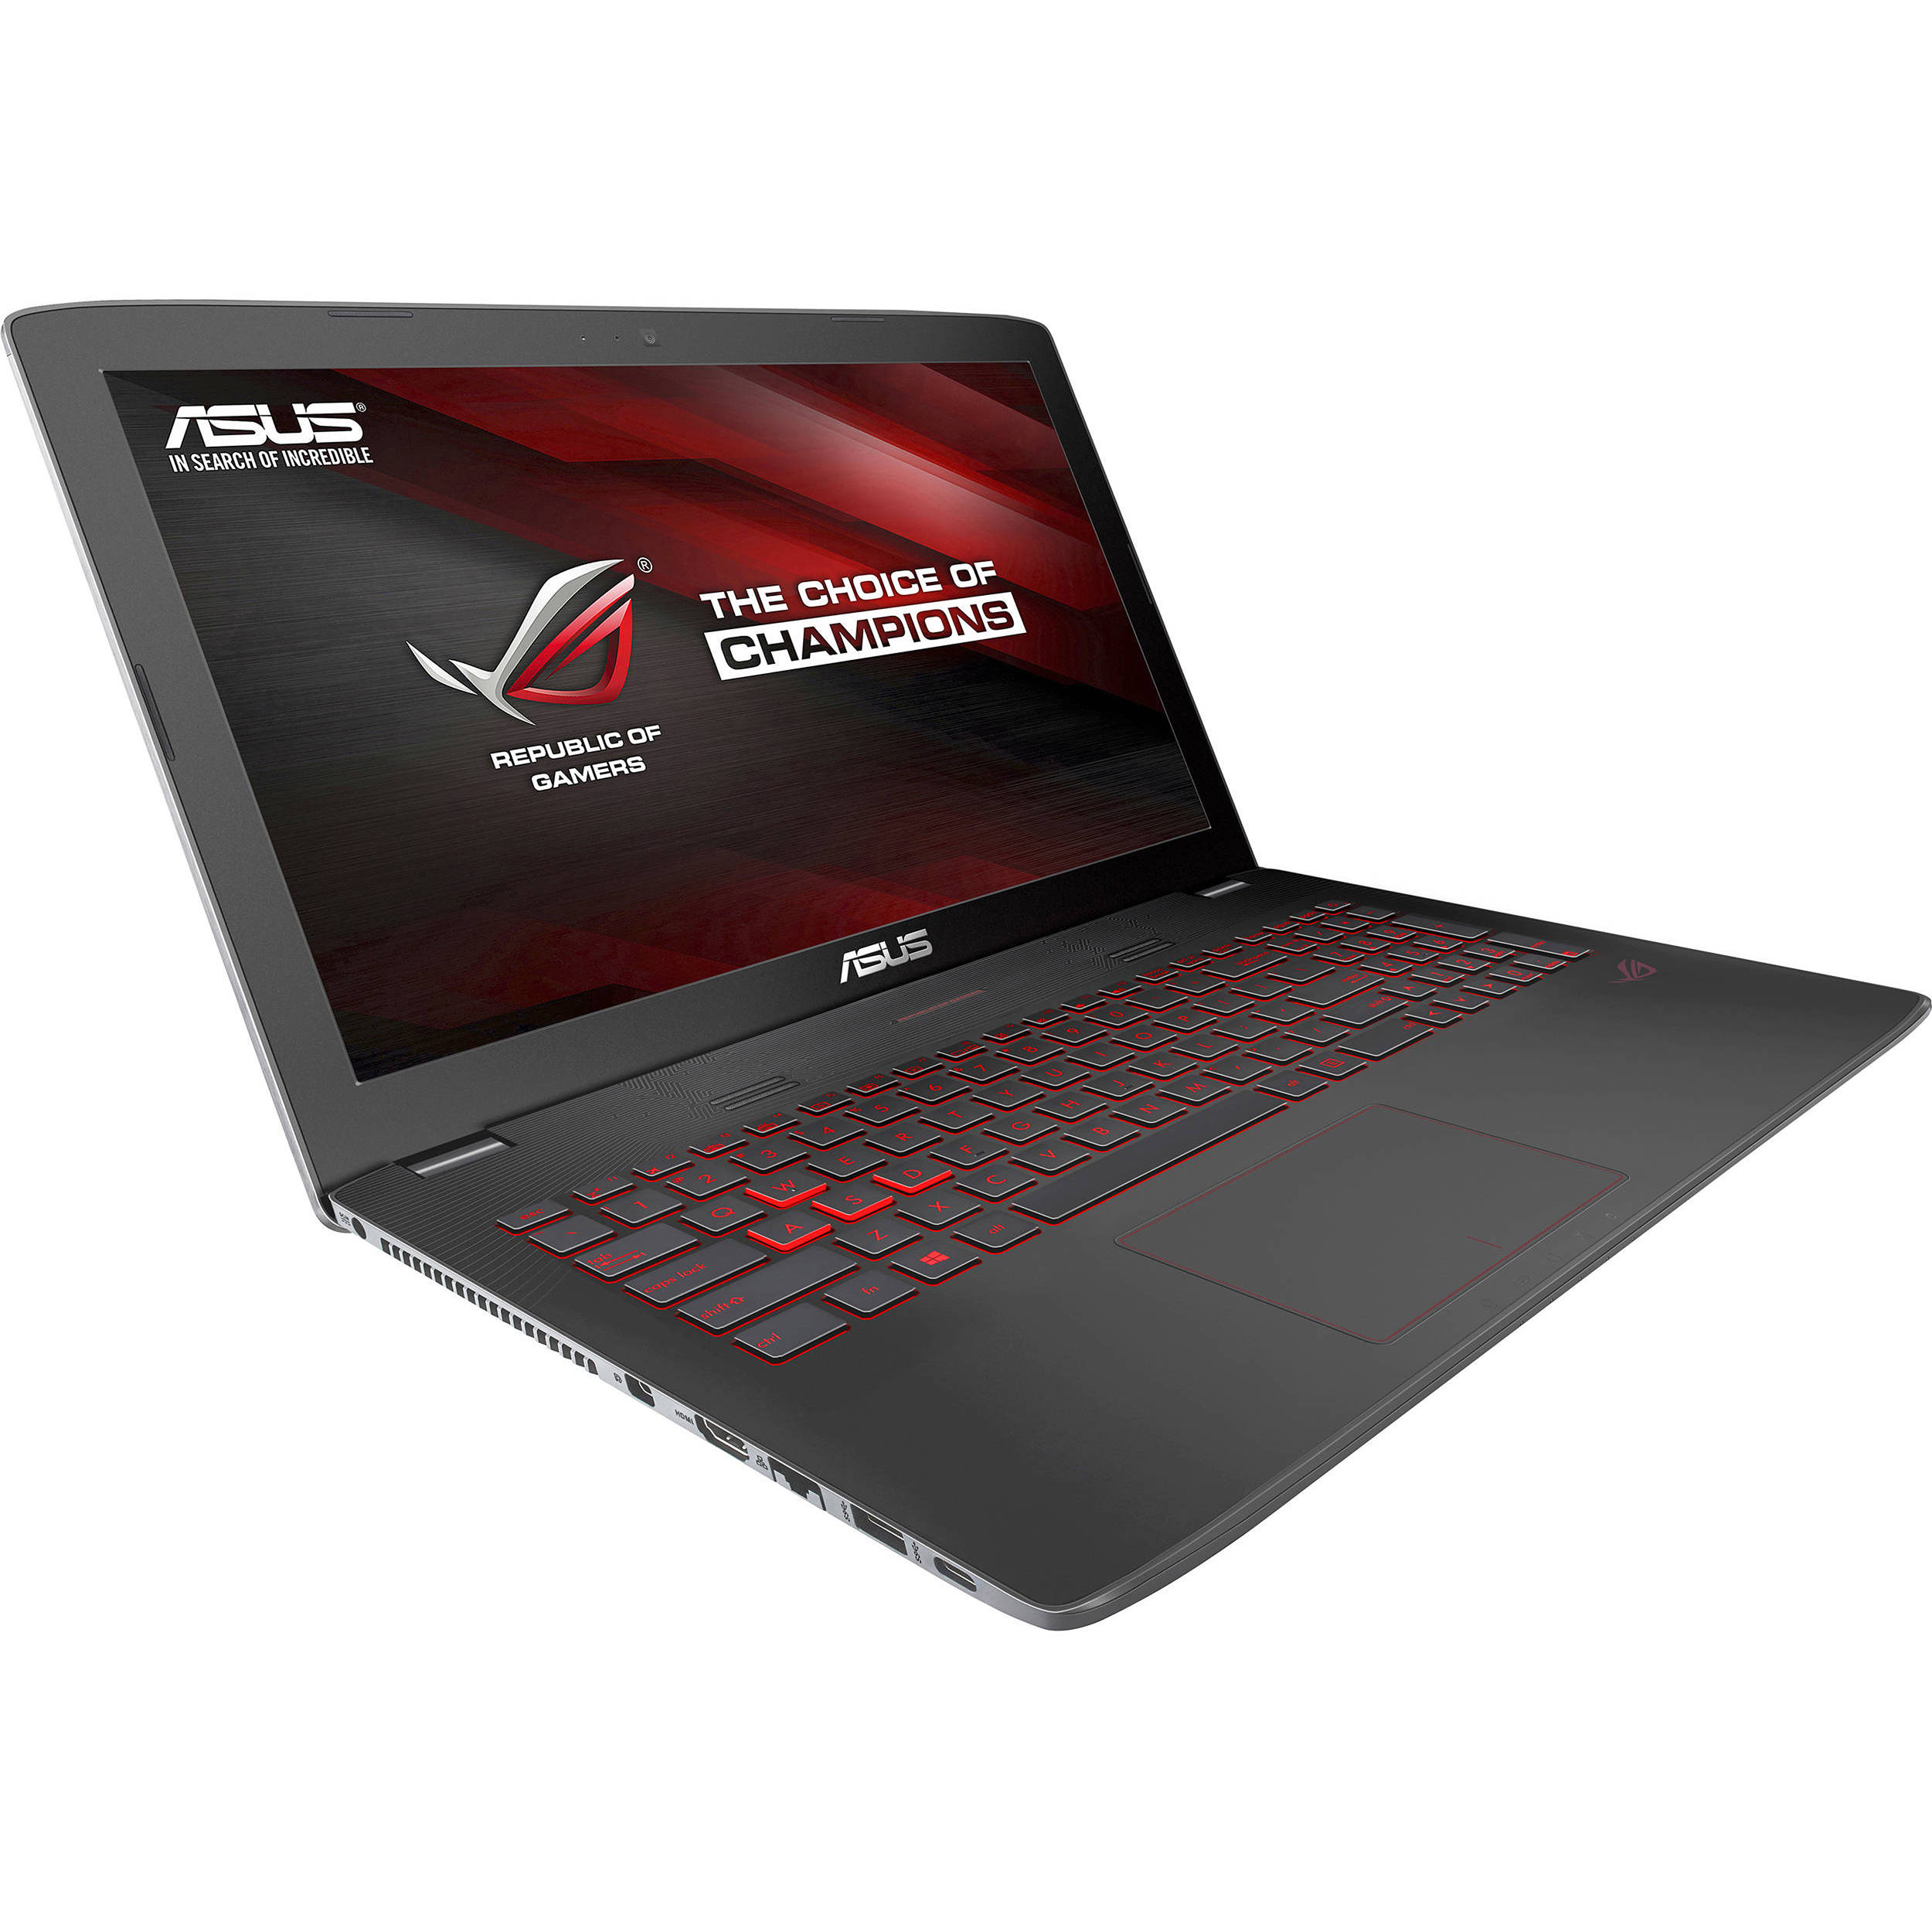 http://www.bhphotovideo.com/images/images2500x2500/asus_gl552vw_dh74_i7_6700hq_16gb_1tb_128ms3_windows_10_64_15_6_1183449.jpg